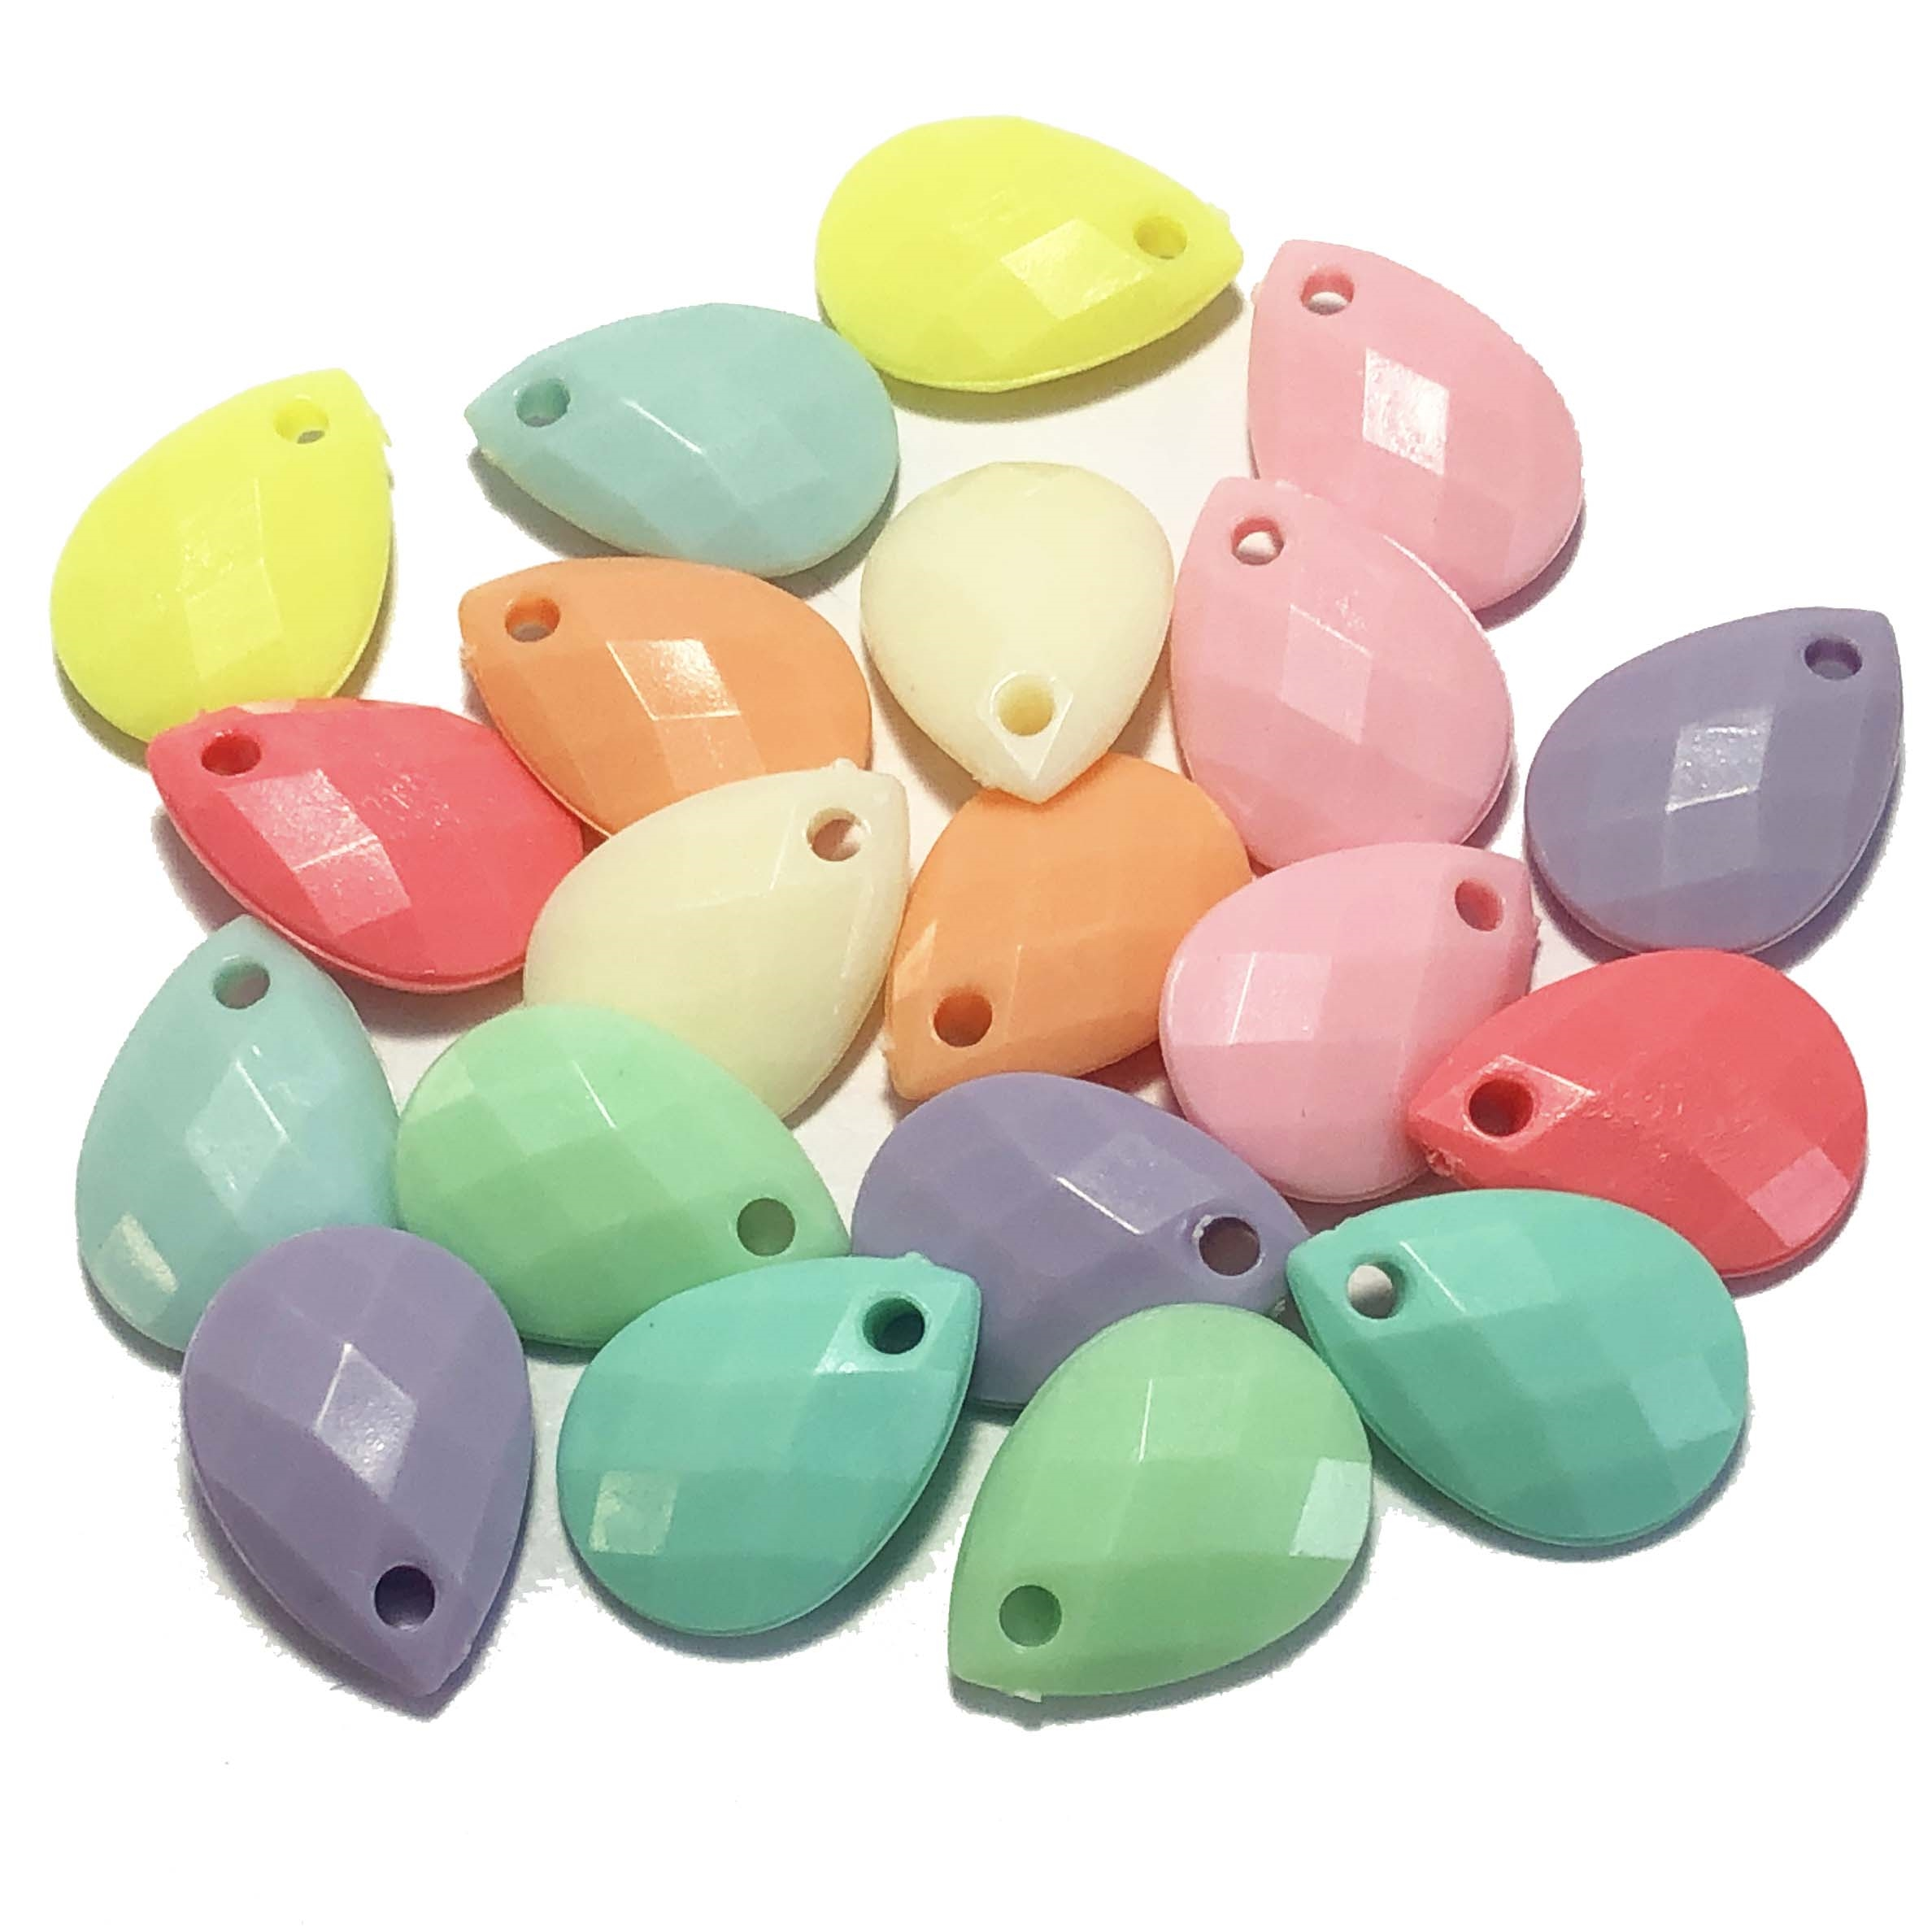 opaque acrylic drop pendants, multi-color, 09584, acrylic, plastic beads, 18x12mm, teardrop beads, B'sue Boutiques, jewelry supplies, jewelry making, beads, faceted teardrops, pastel colors